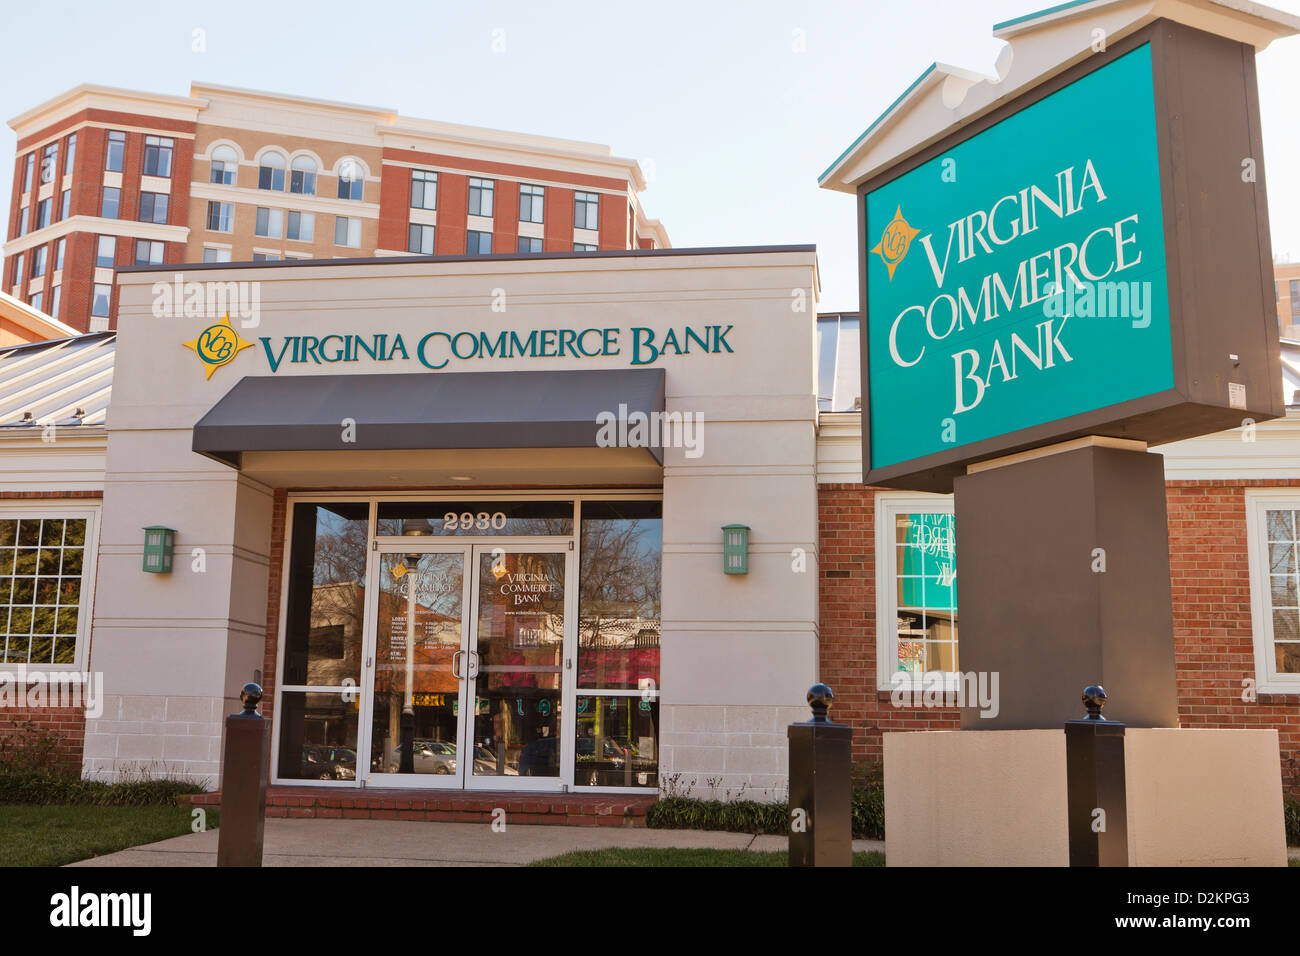 Virginia Commerce Bank - Stock Image